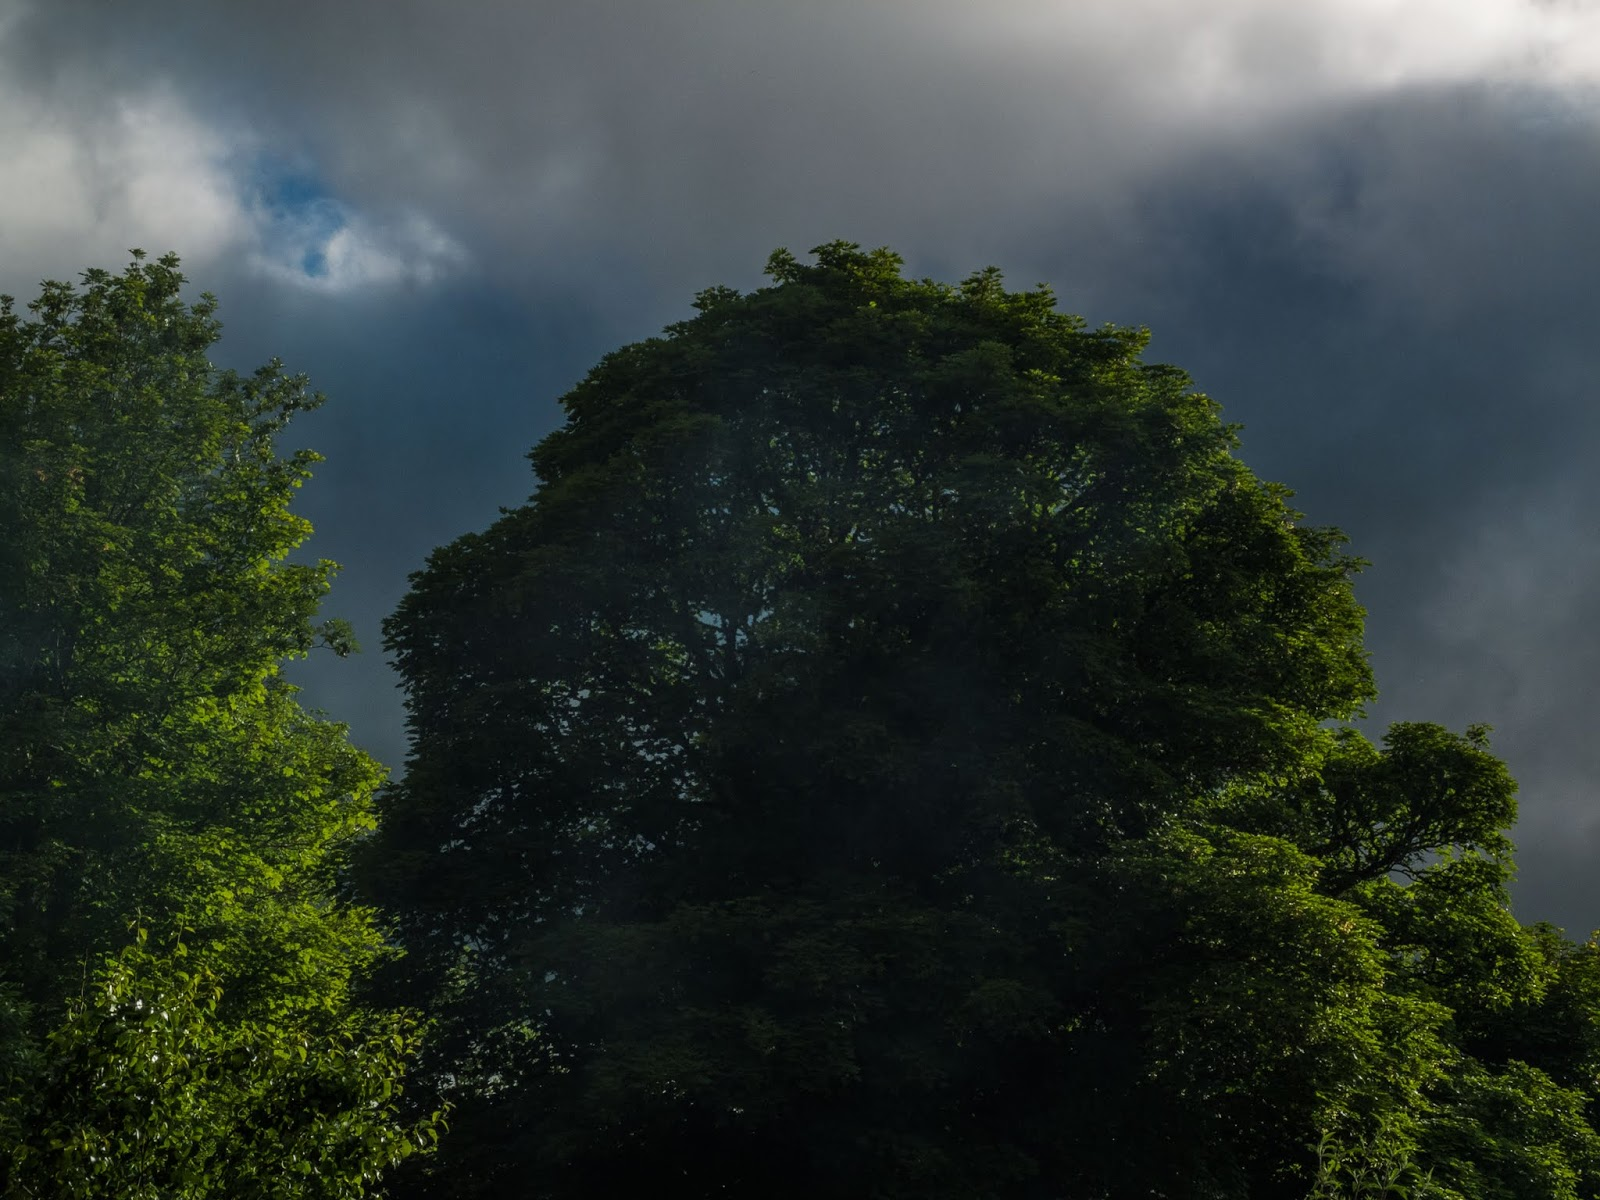 Sun shining on mature maple trees with dark clouds in the sky.